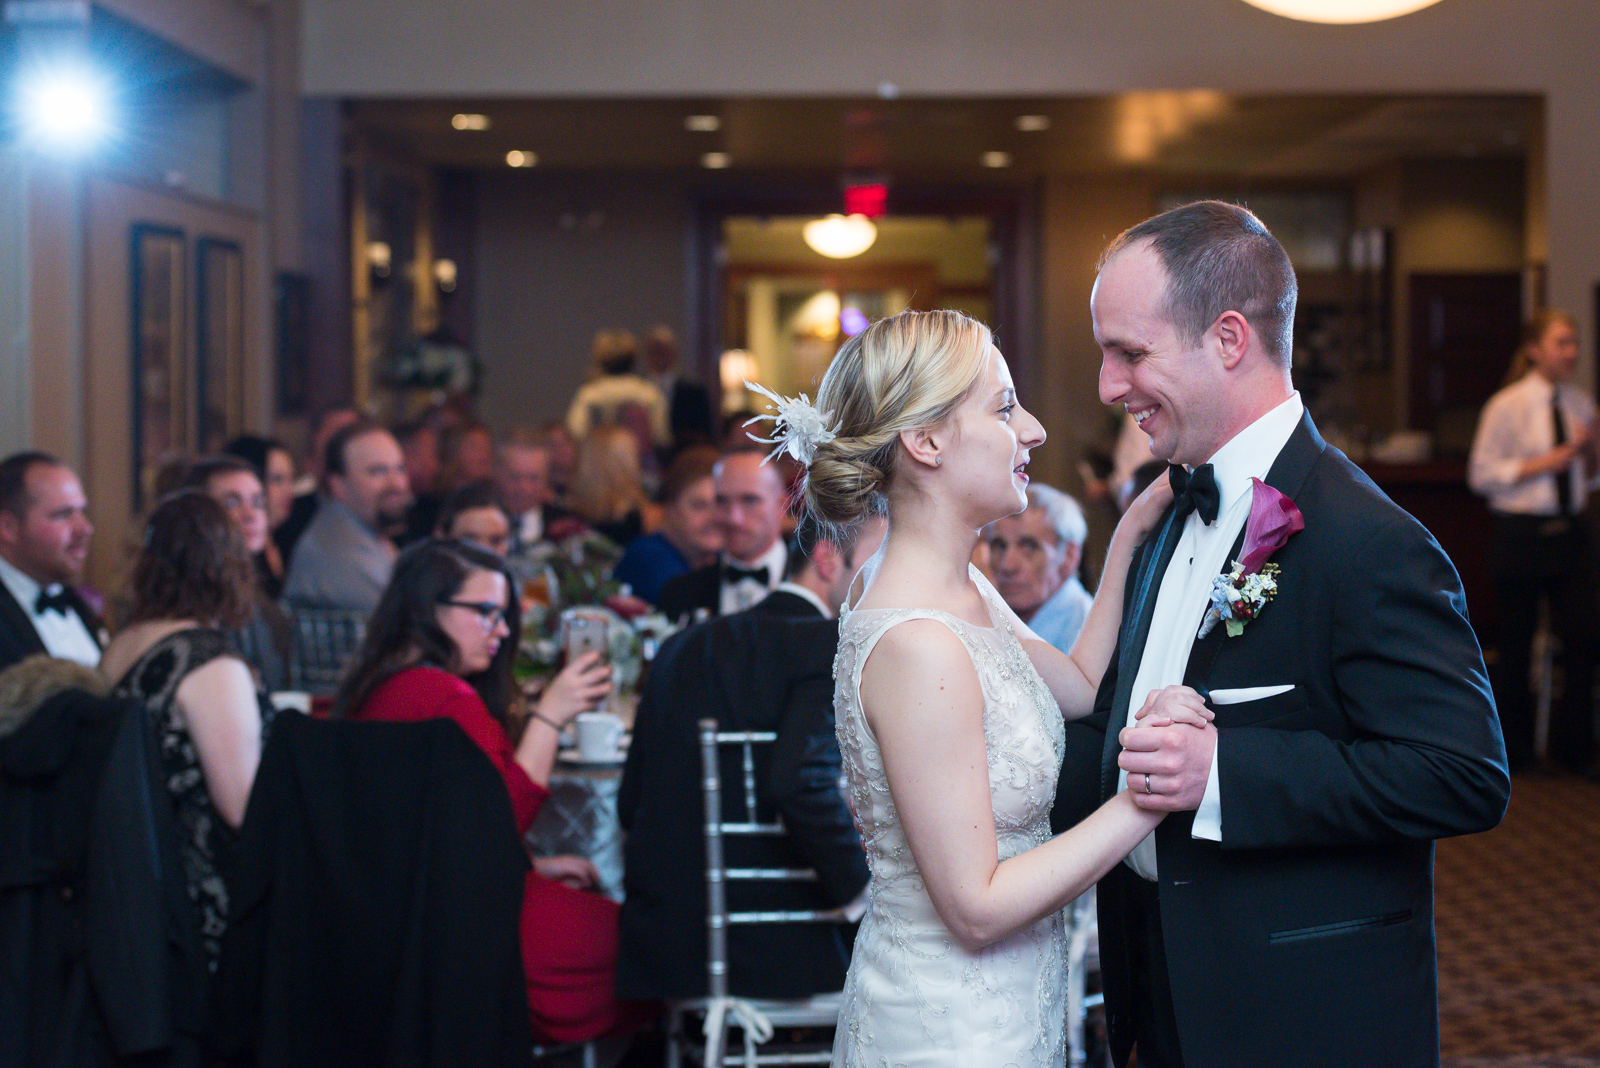 first-dance-Scranton-clarks-summit-wedding-glen-oaks-contry-club-wedding-photographer-steven-serge-1.jpg